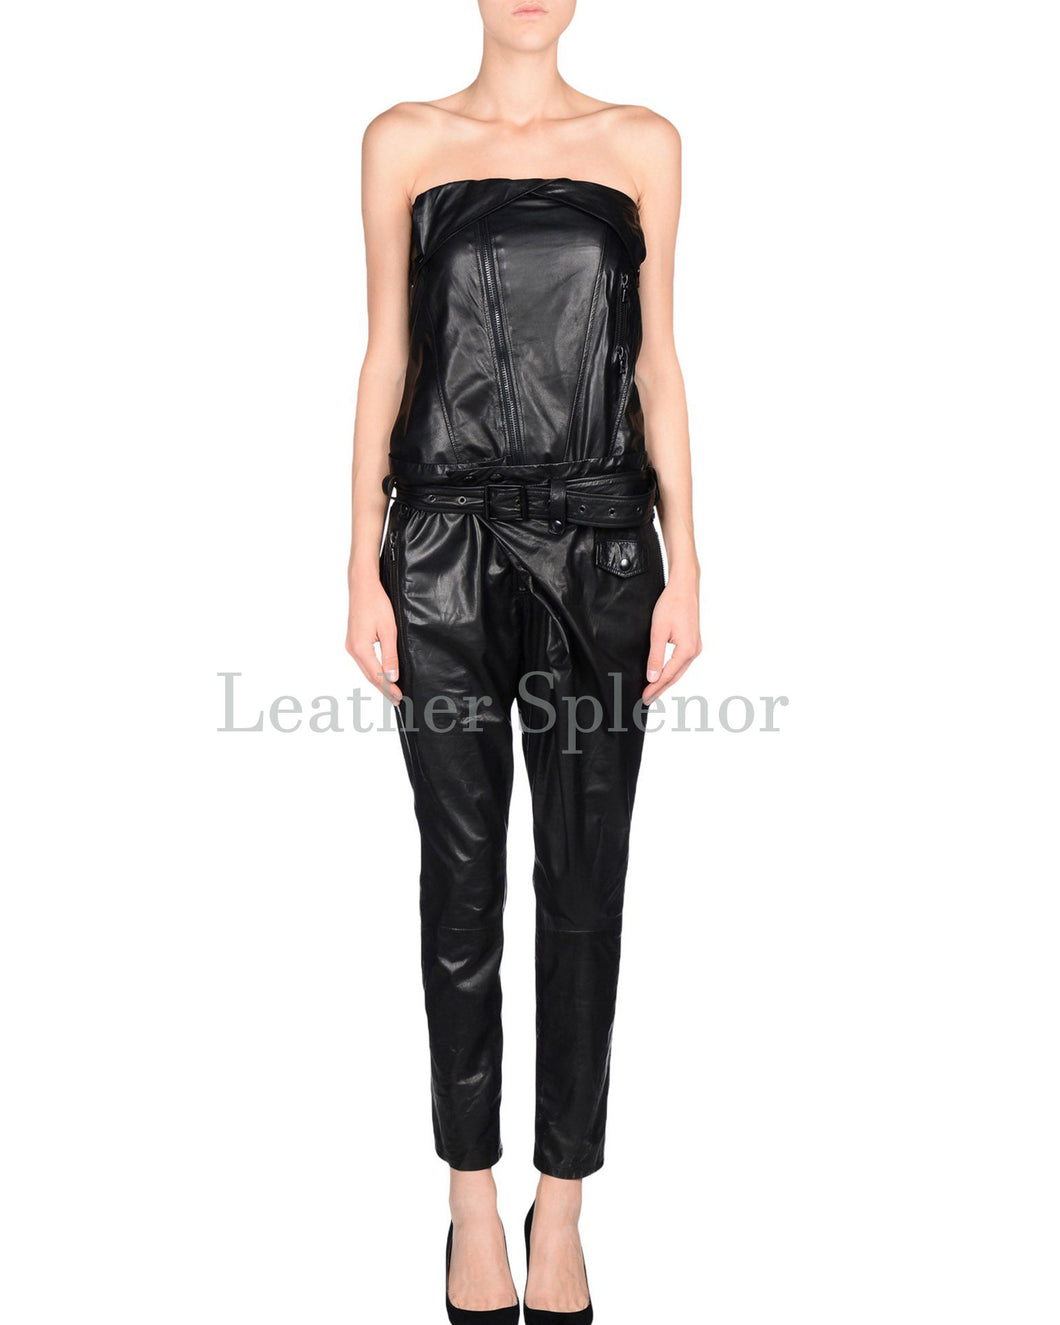 Strapless Styled Women Leather Jumpsuit